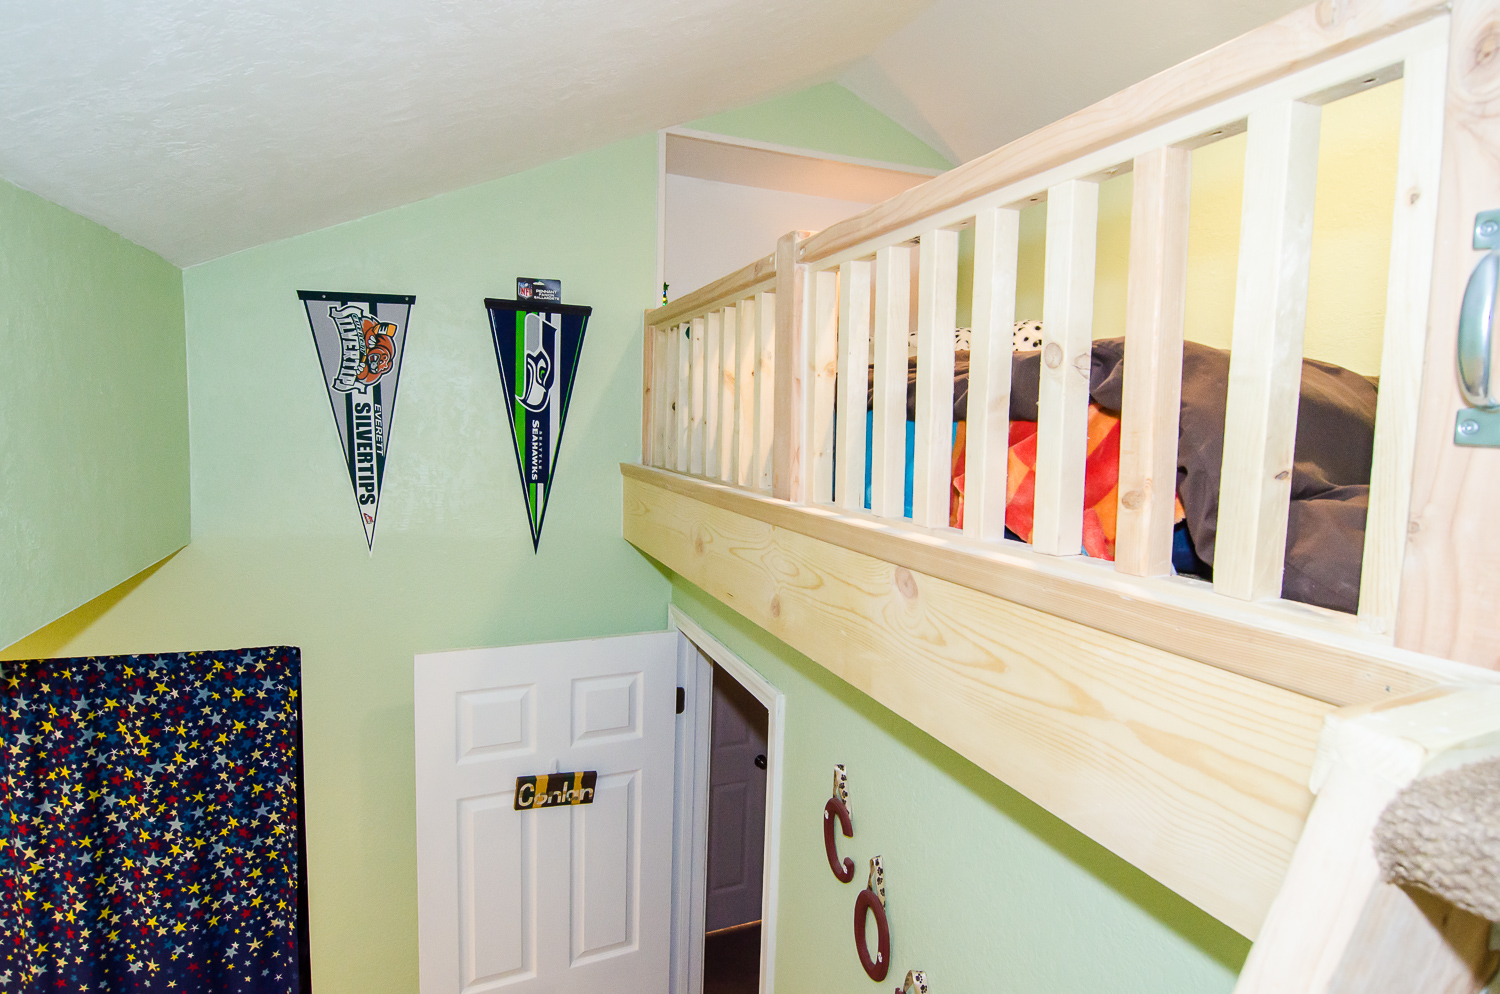 The Perfect Solution for Small Bedrooms: Built-In Attic Space Loft (DIY Project)